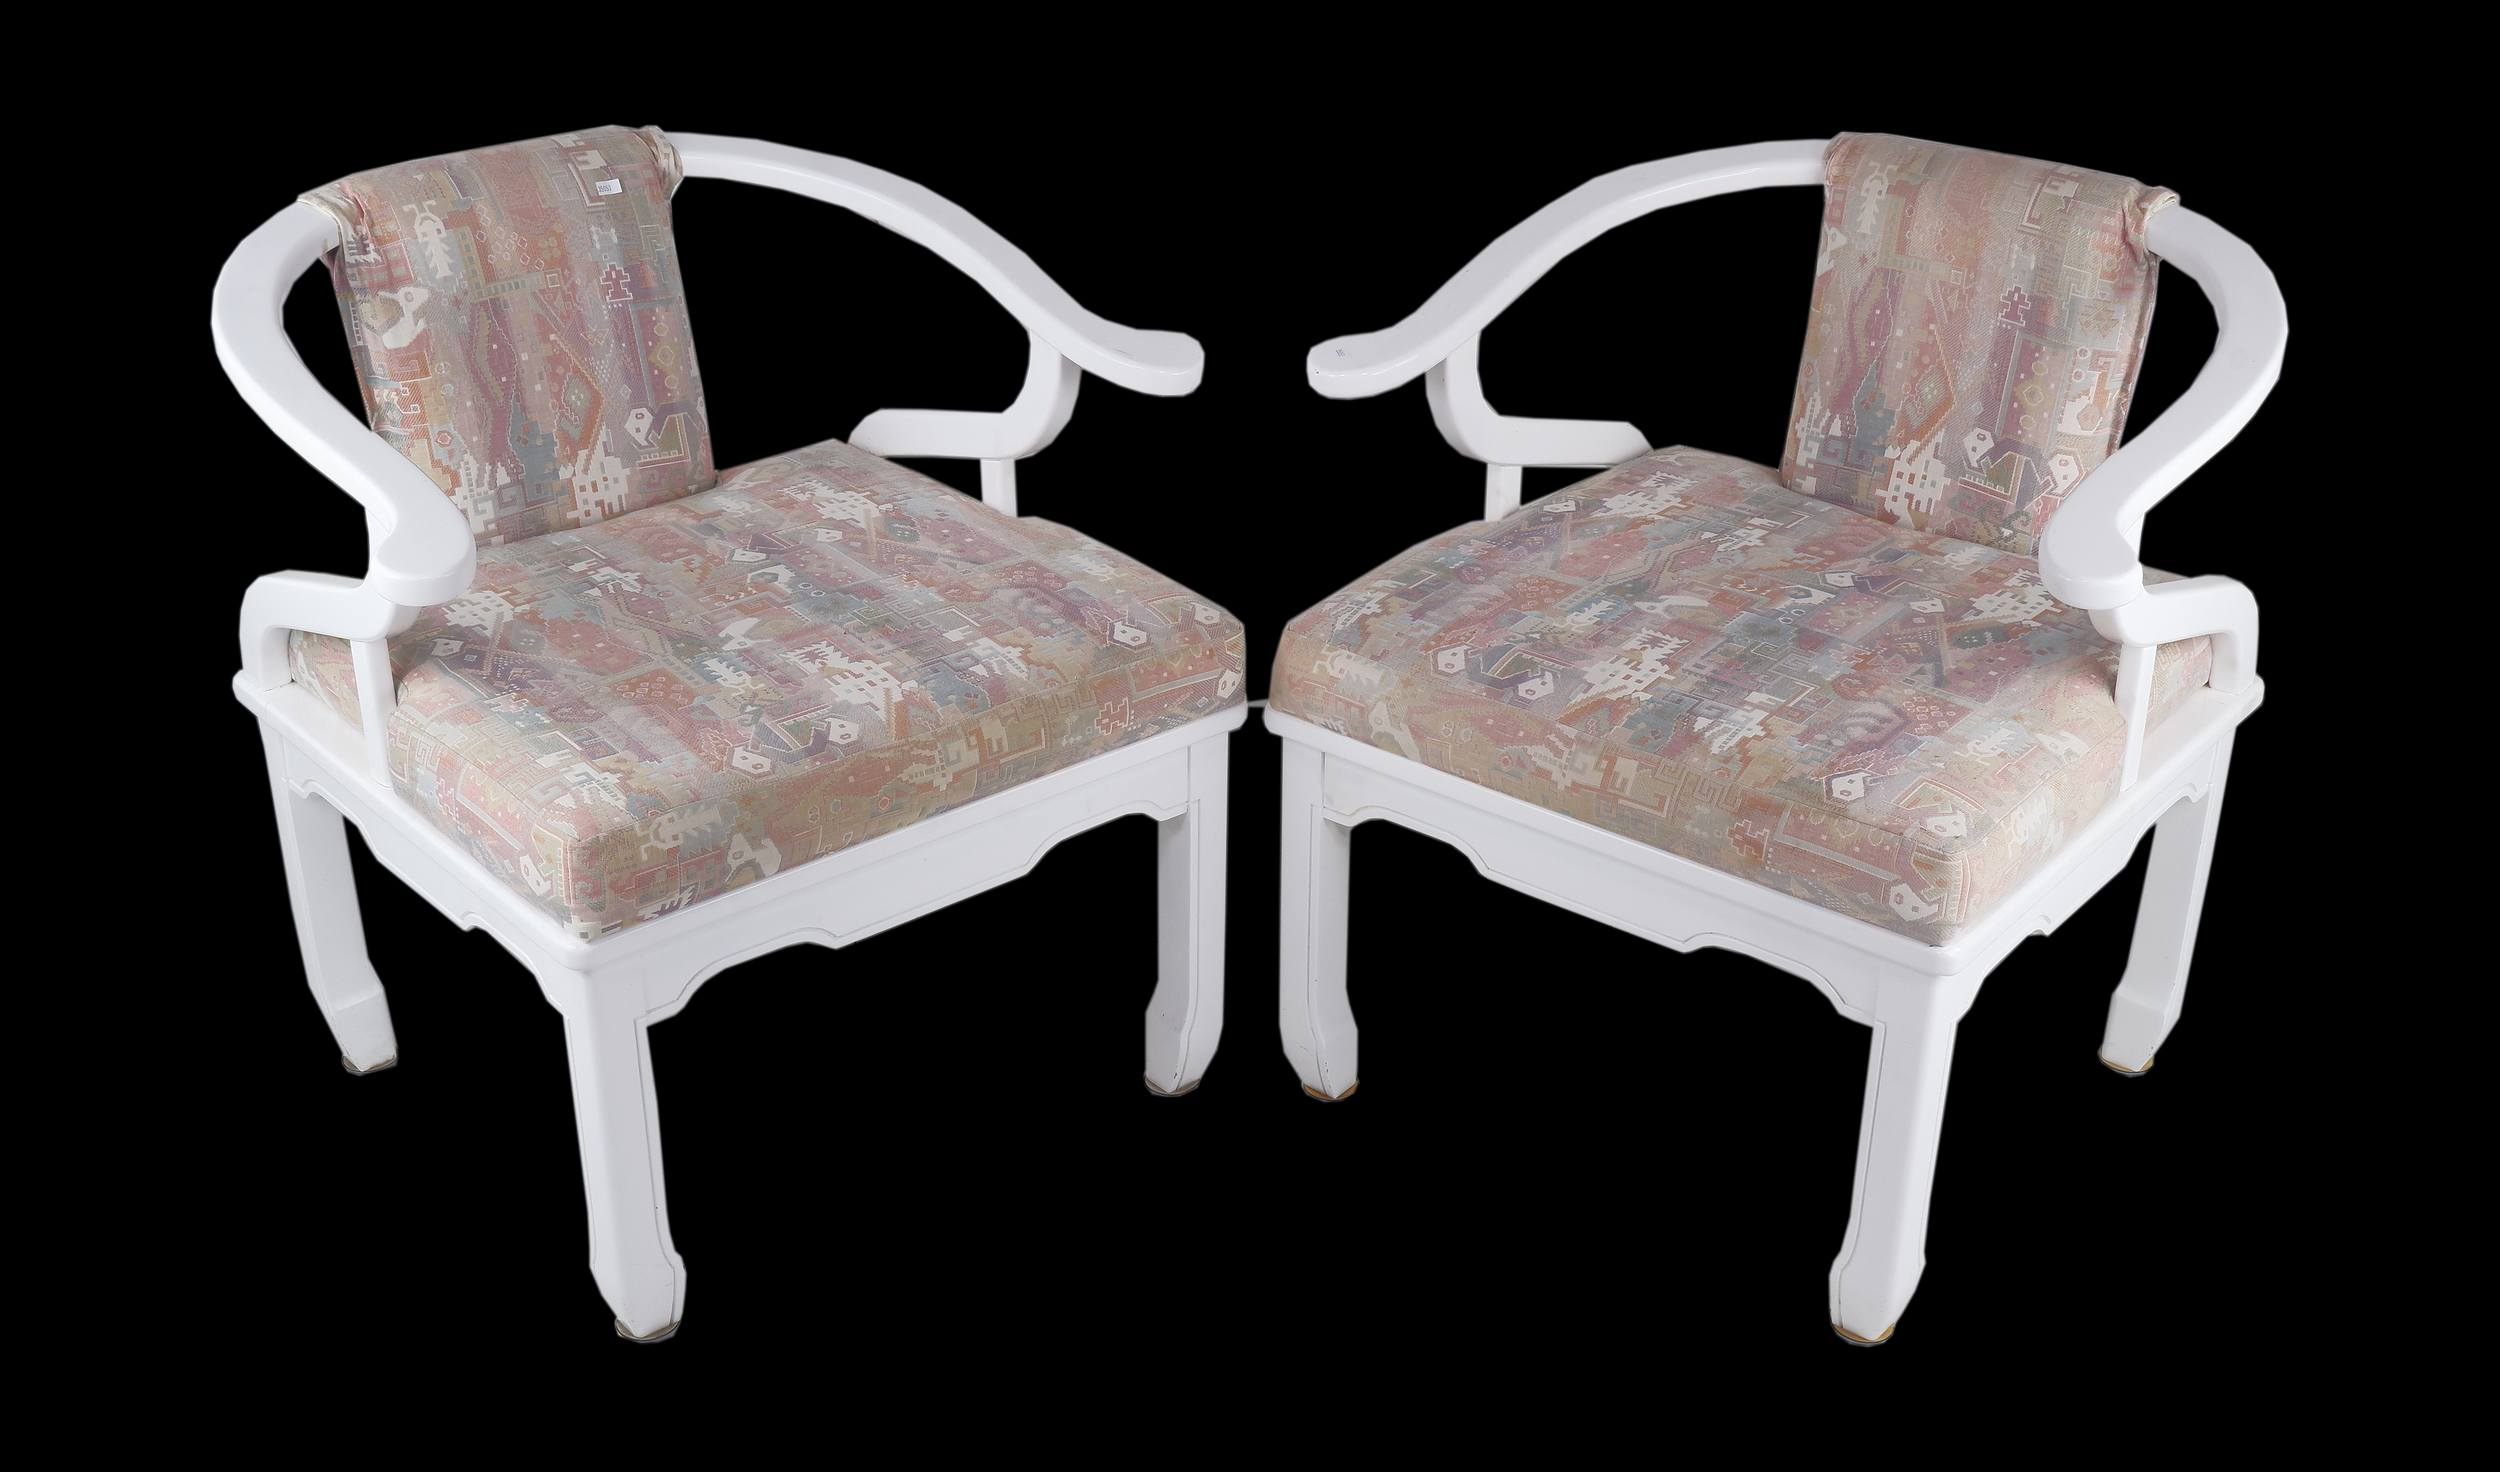 'Pair of Van Treight Dynasty Party Chairs Circa 1970s'